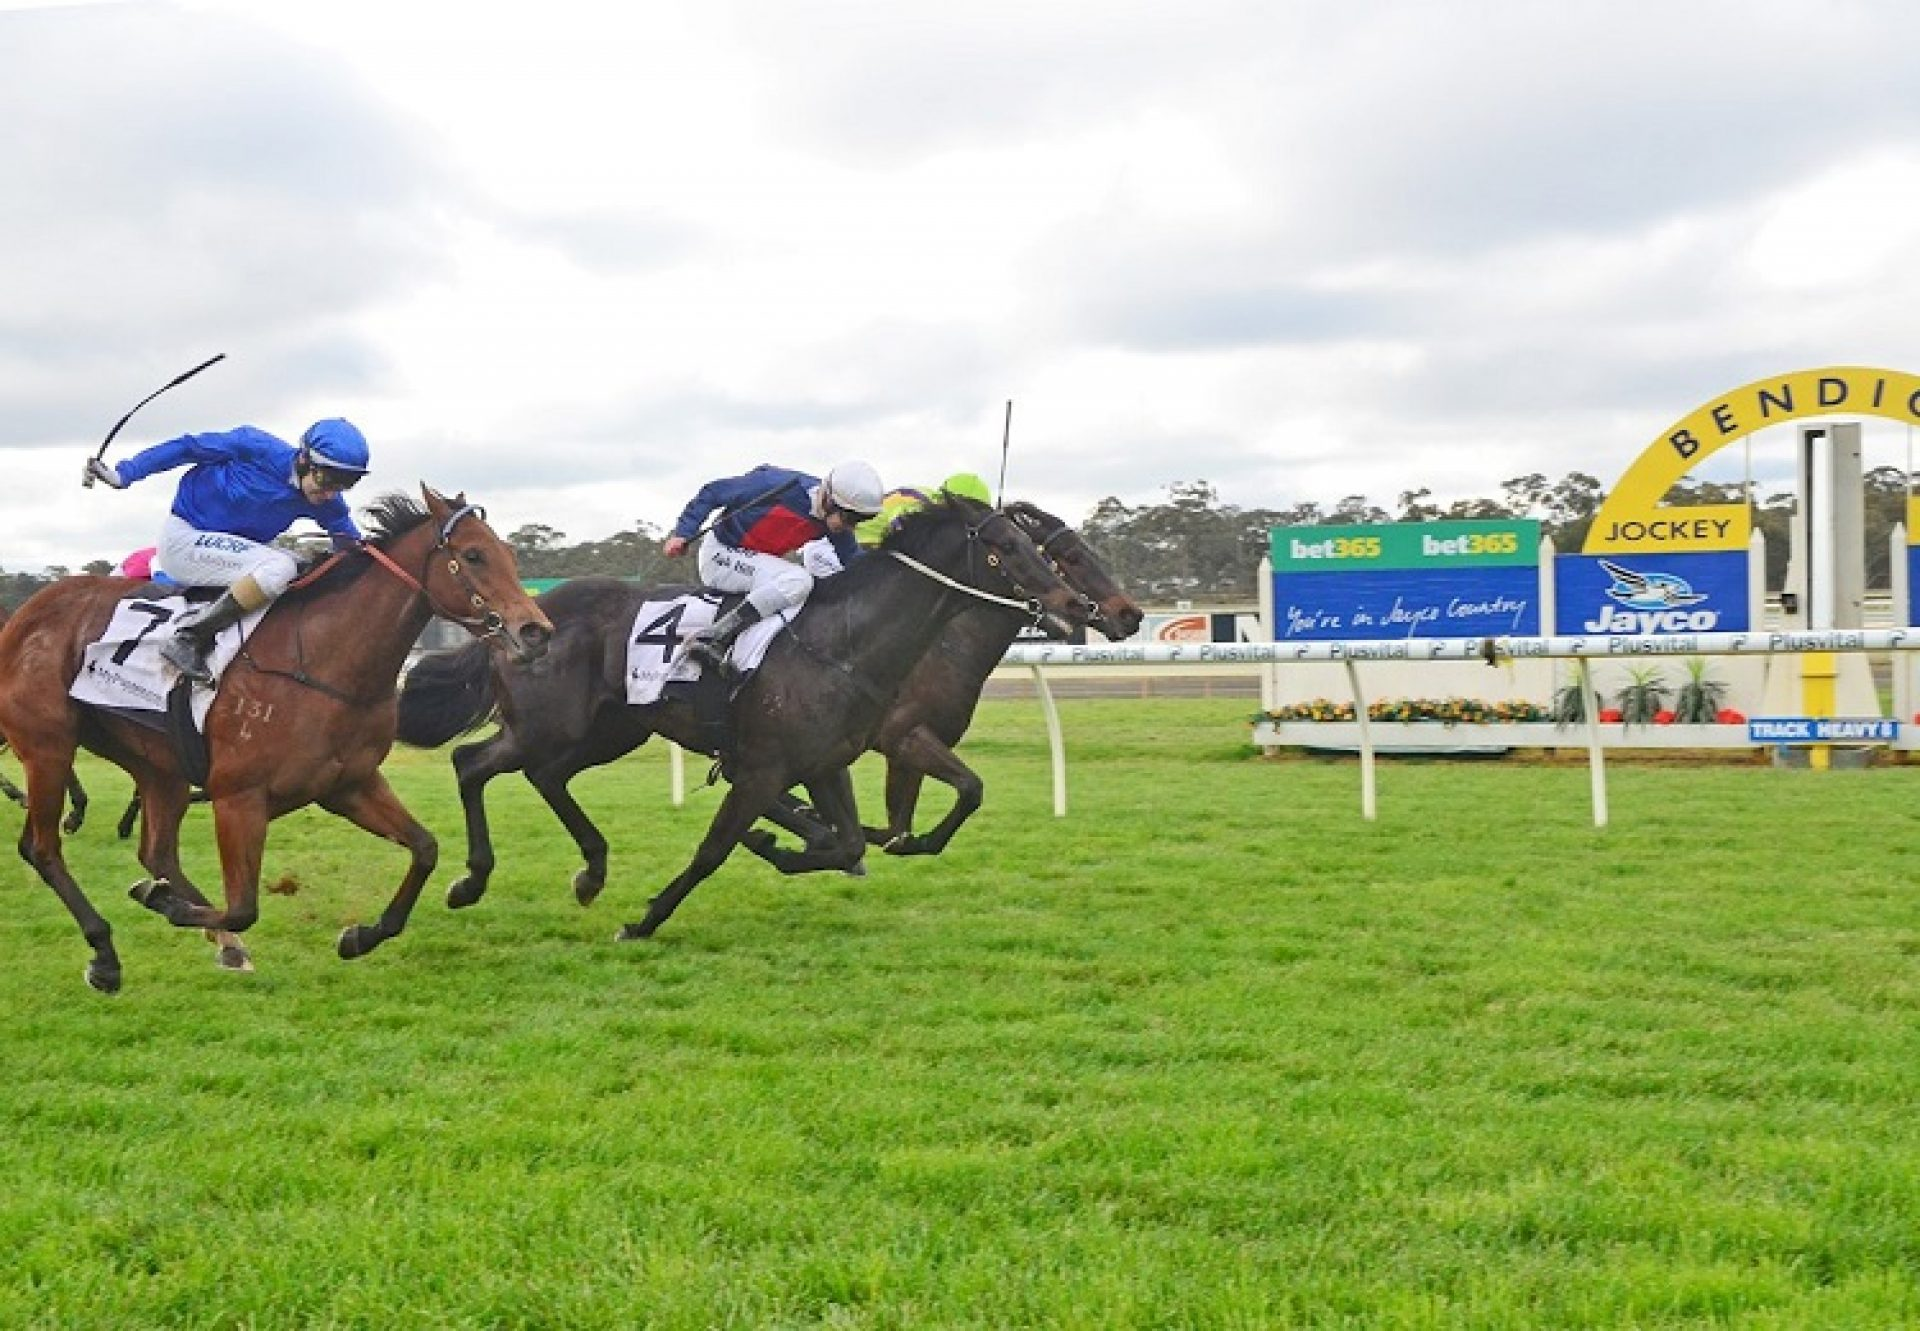 Octabello (Pierro) winning at Bendigo